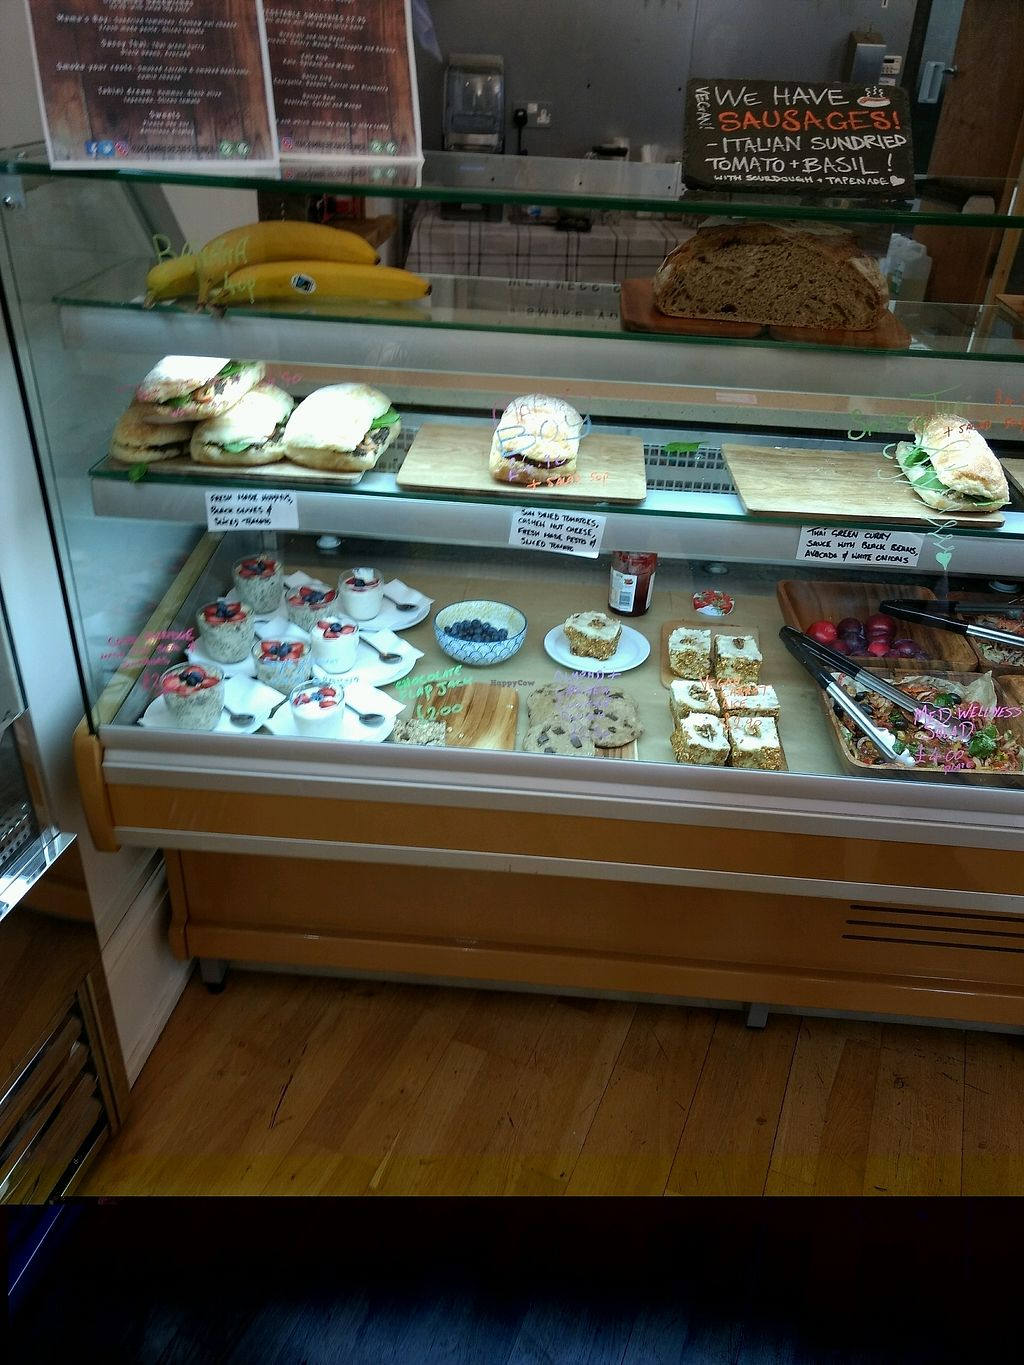 """Photo of Camber Coffee  by <a href=""""/members/profile/craigmc"""">craigmc</a> <br/>deli counter, all sandwiches vegan <br/> August 22, 2017  - <a href='/contact/abuse/image/95521/295626'>Report</a>"""